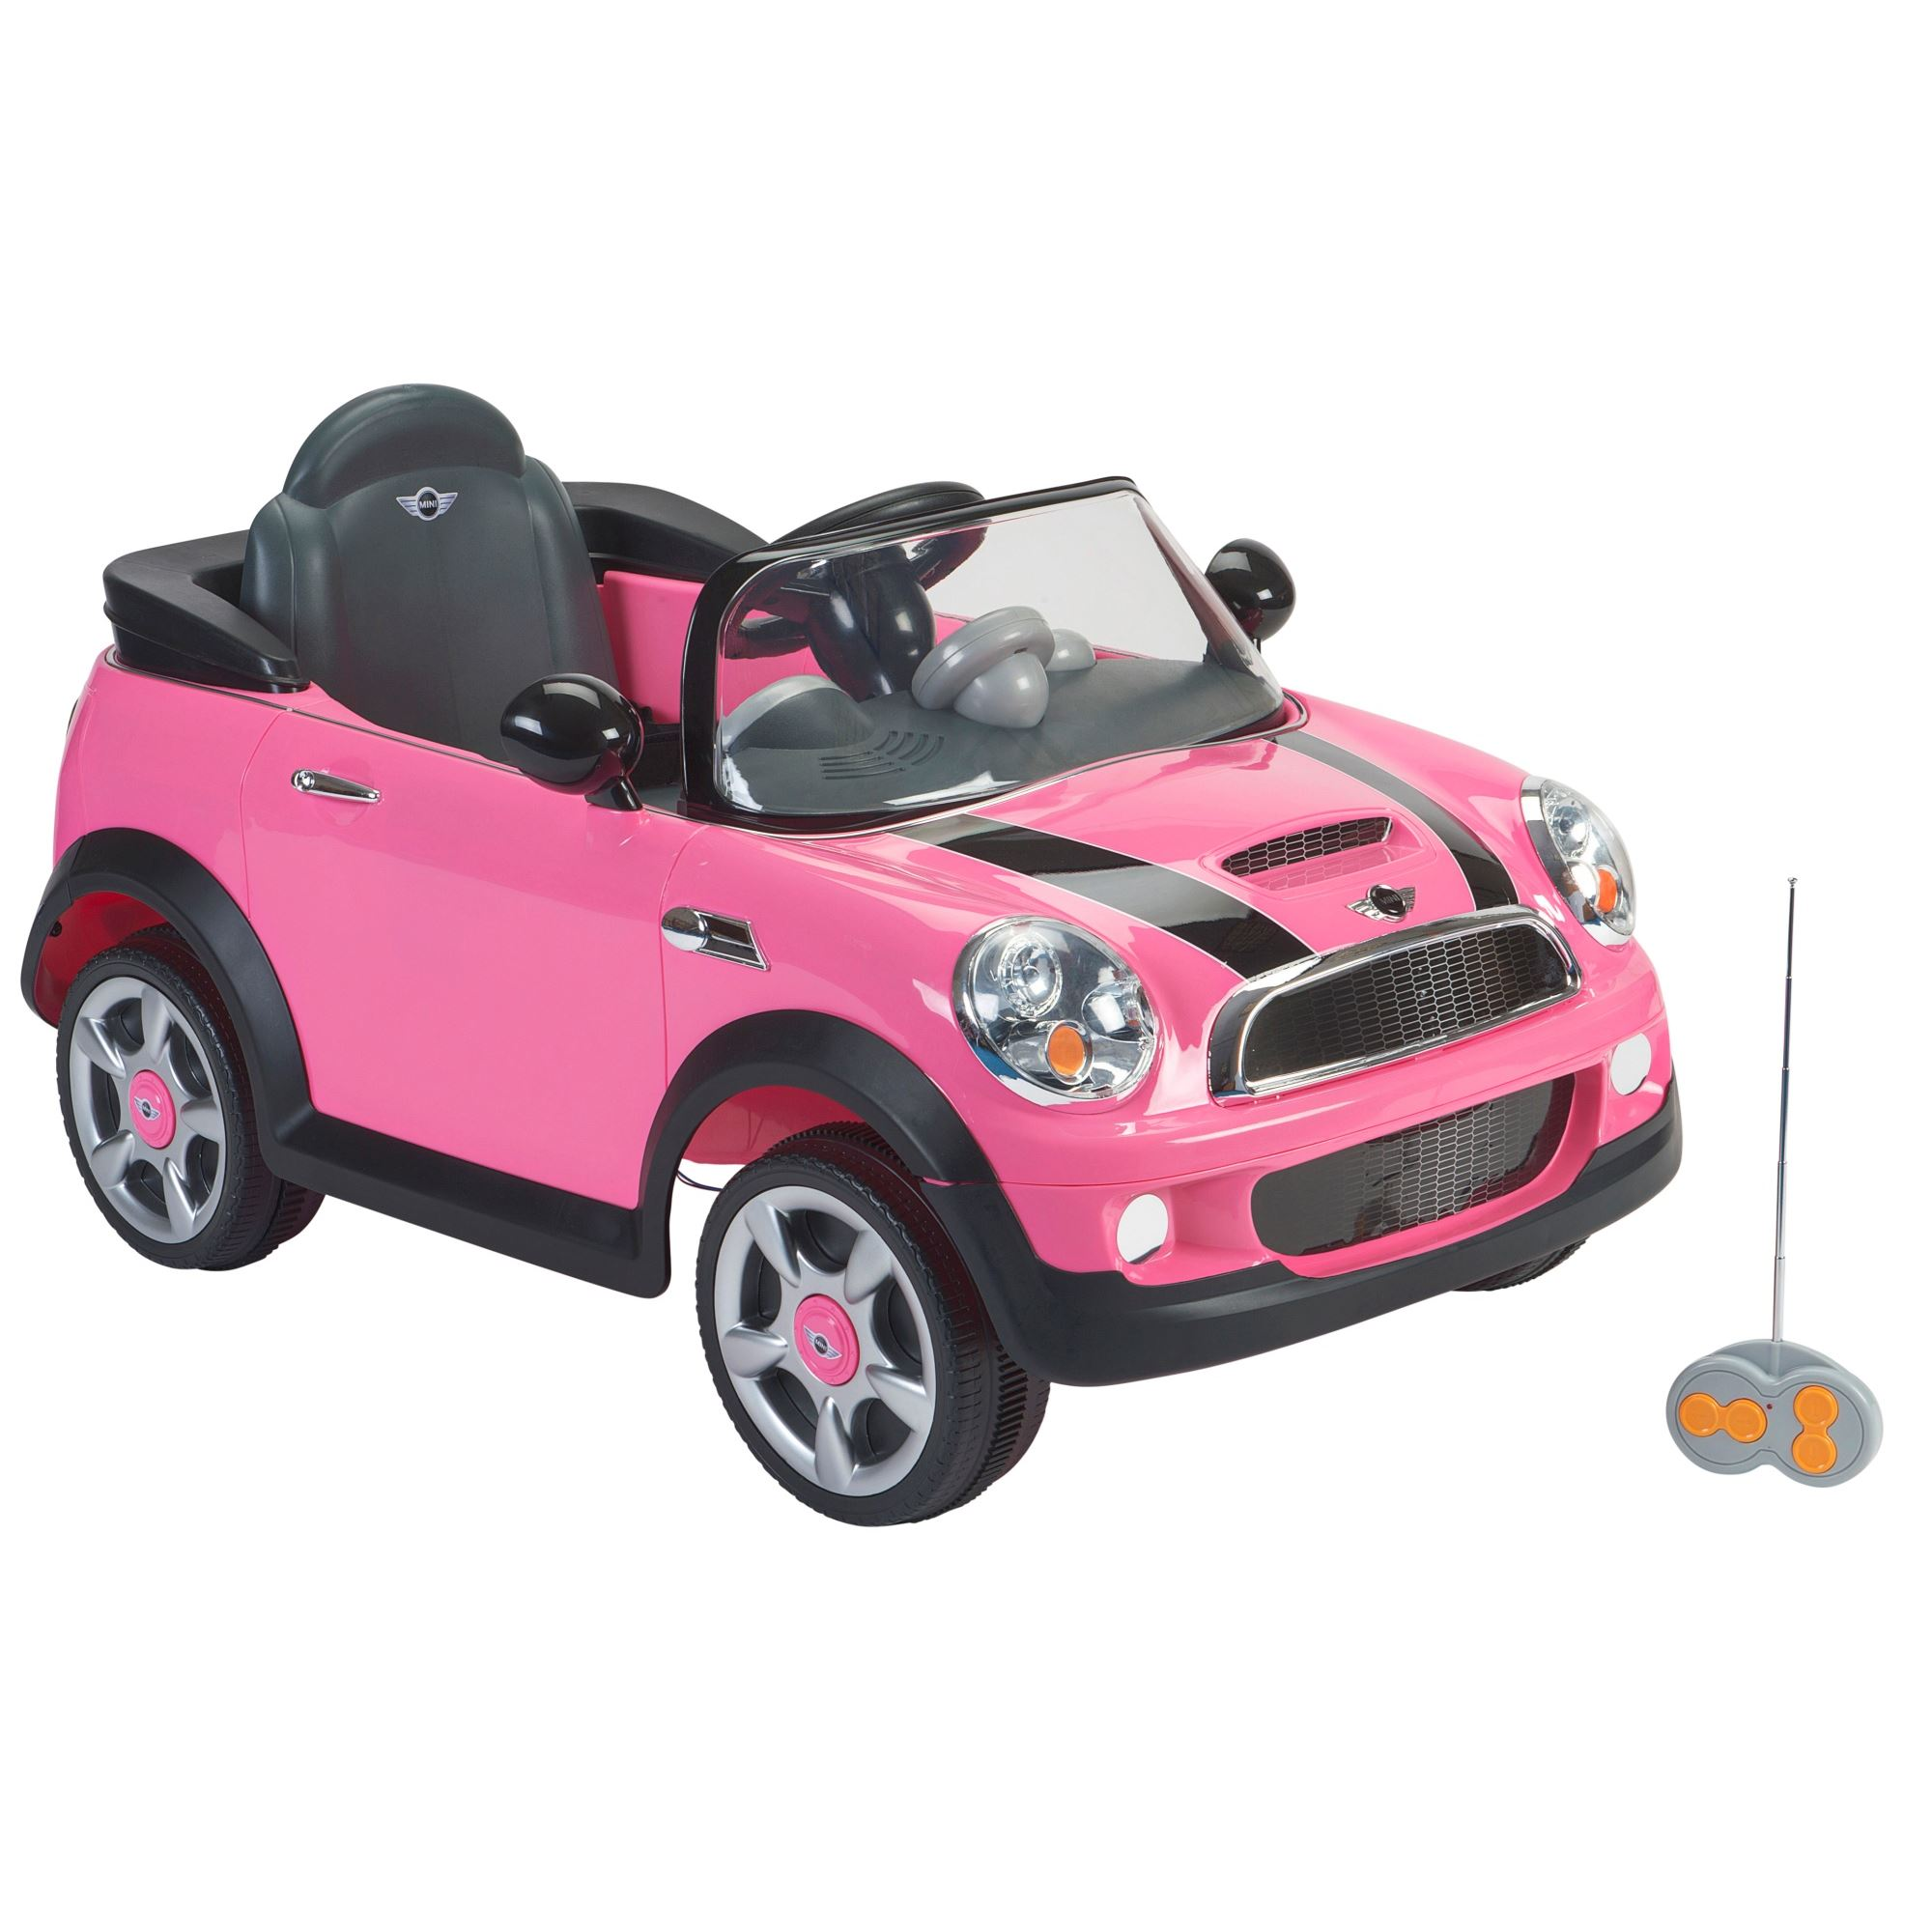 Pink Mini Cooper with remote control